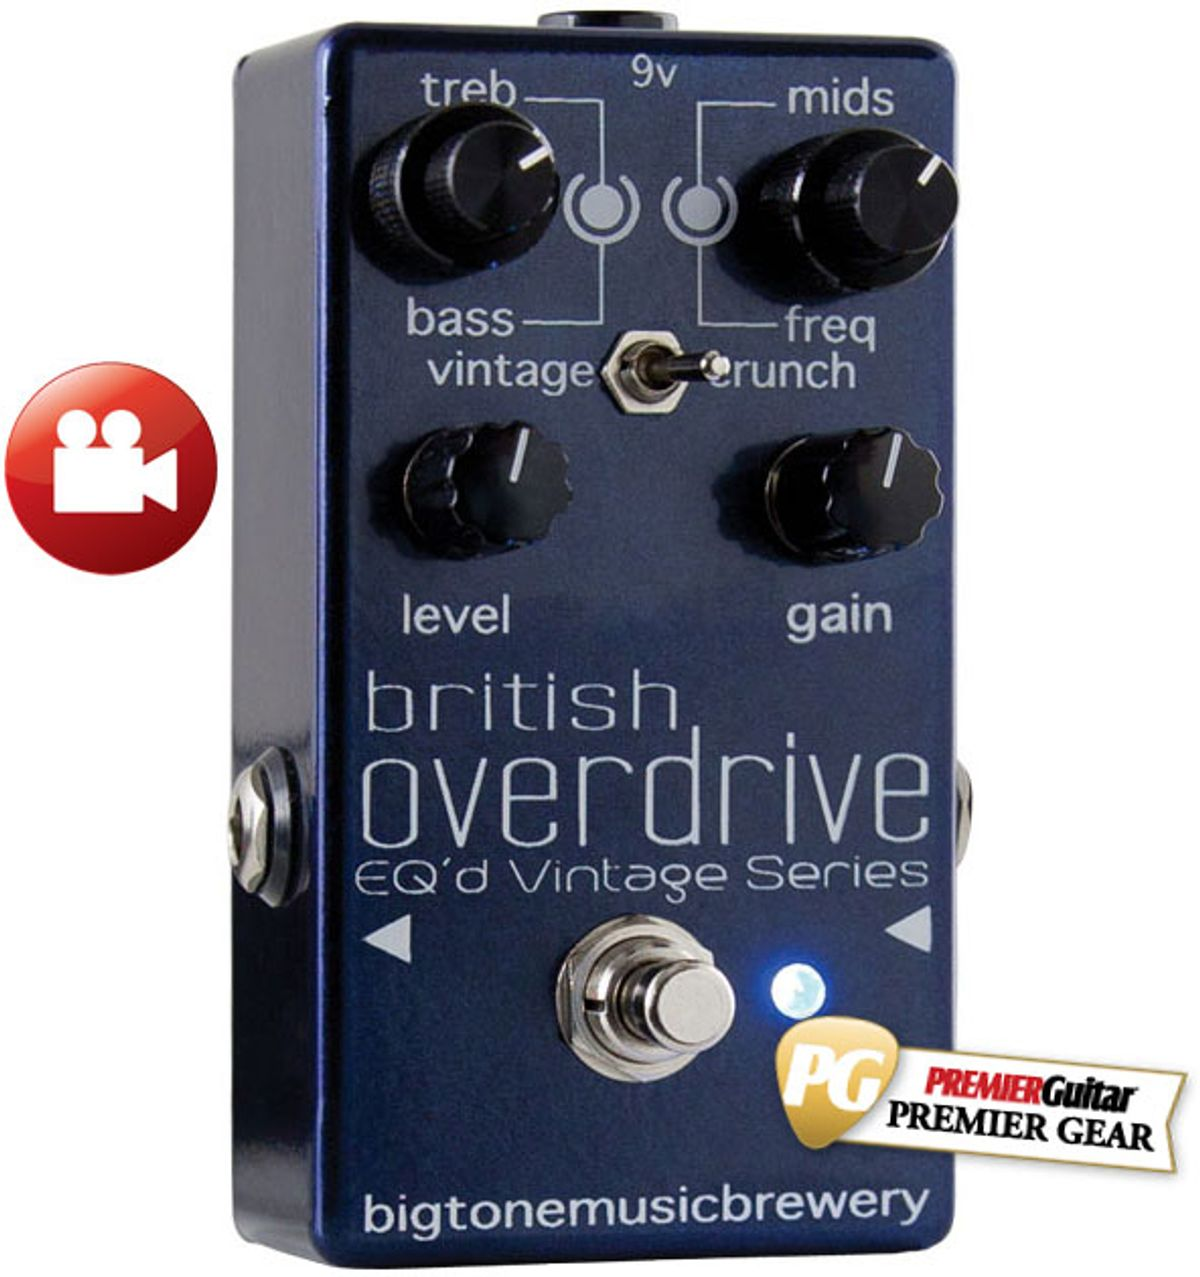 Big Tone Music Brewery British Overdrive Review